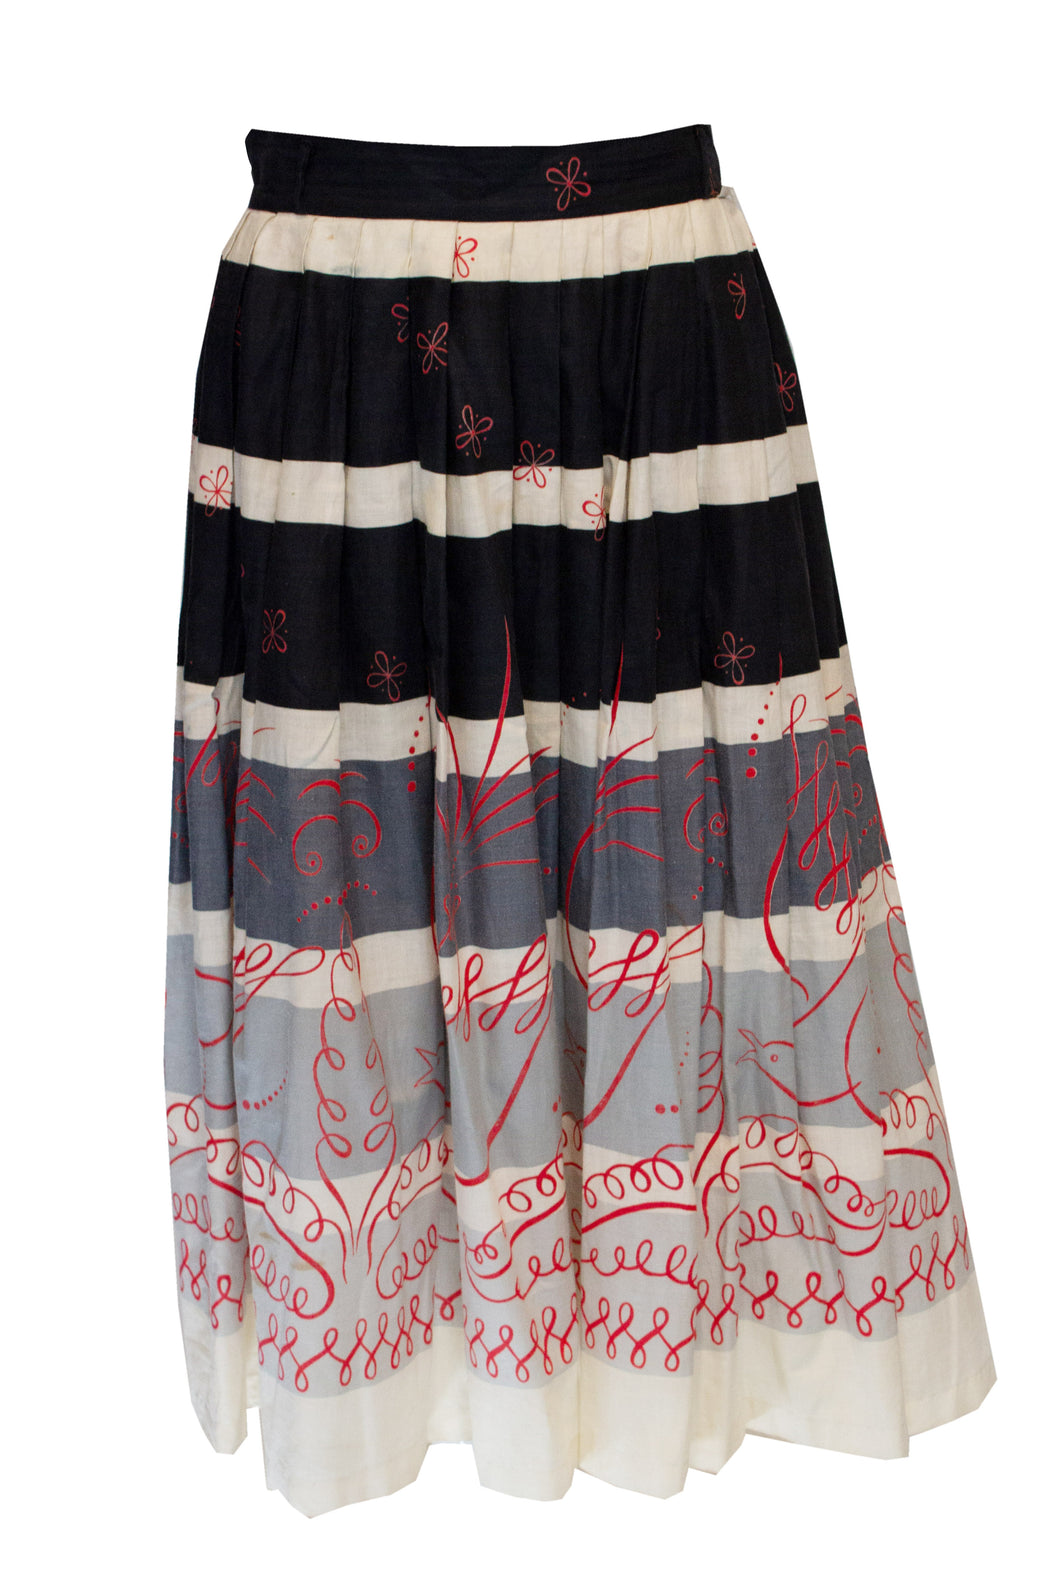 A Vintage 1950s Cruise Cotton summer Skirt